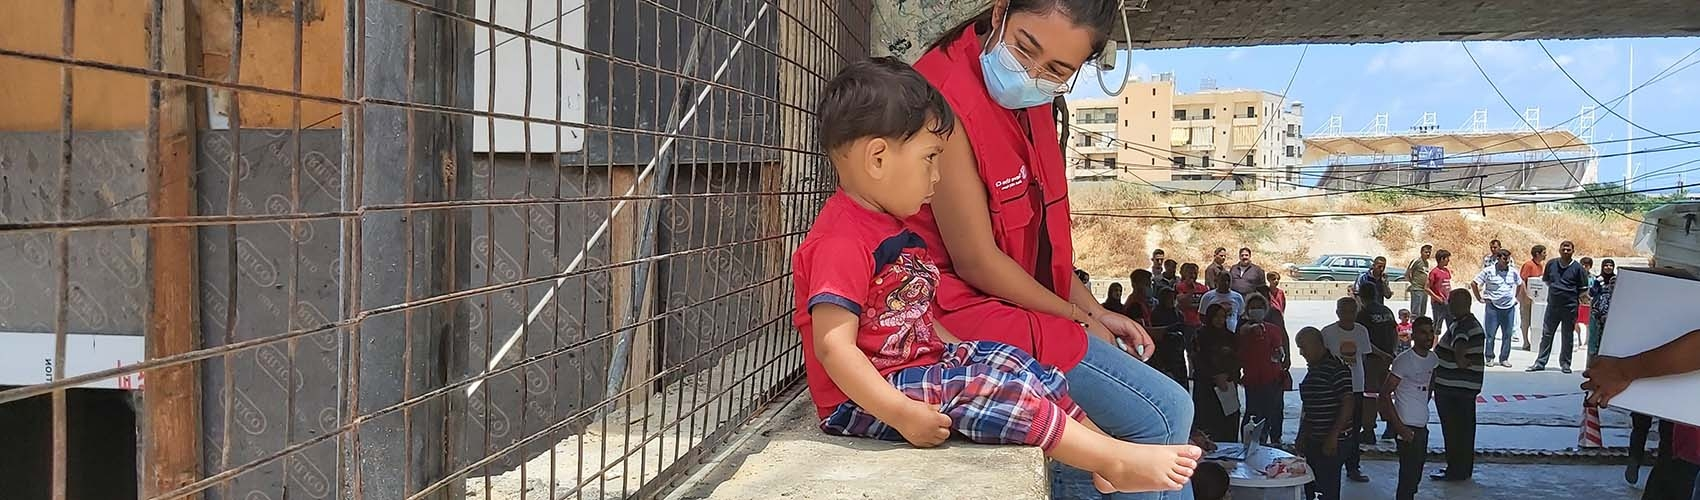 In Lebanon, a health worker wears a face mask while sitting besides a young boy on a ledge overlooking the town.